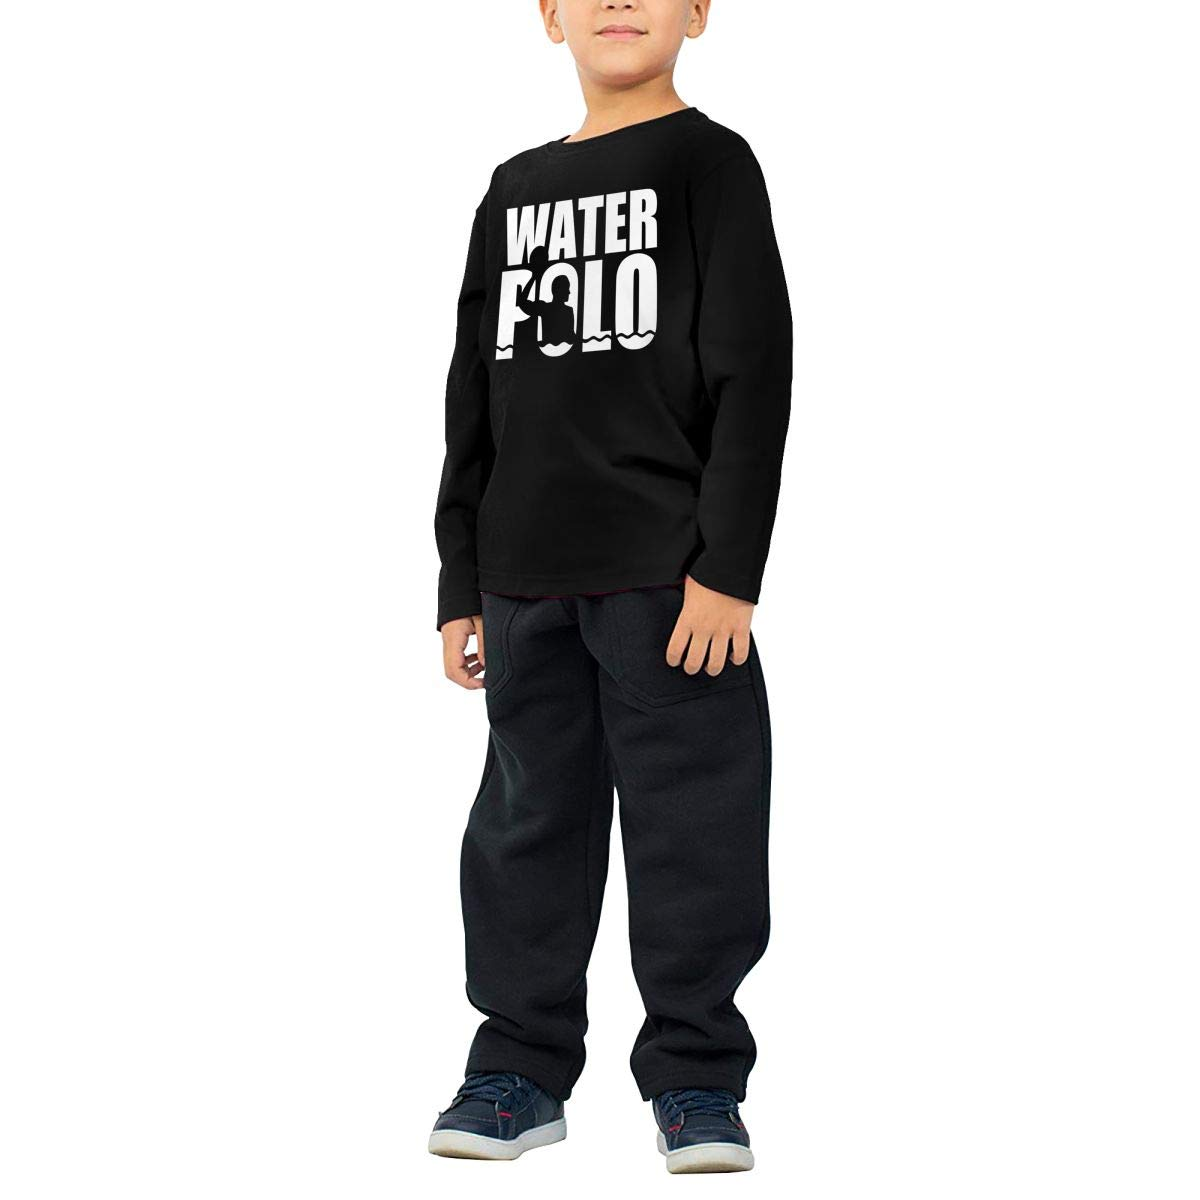 Toddler Water Polo Word with Silhouette-1 ComfortSoft Long Sleeve Shirt